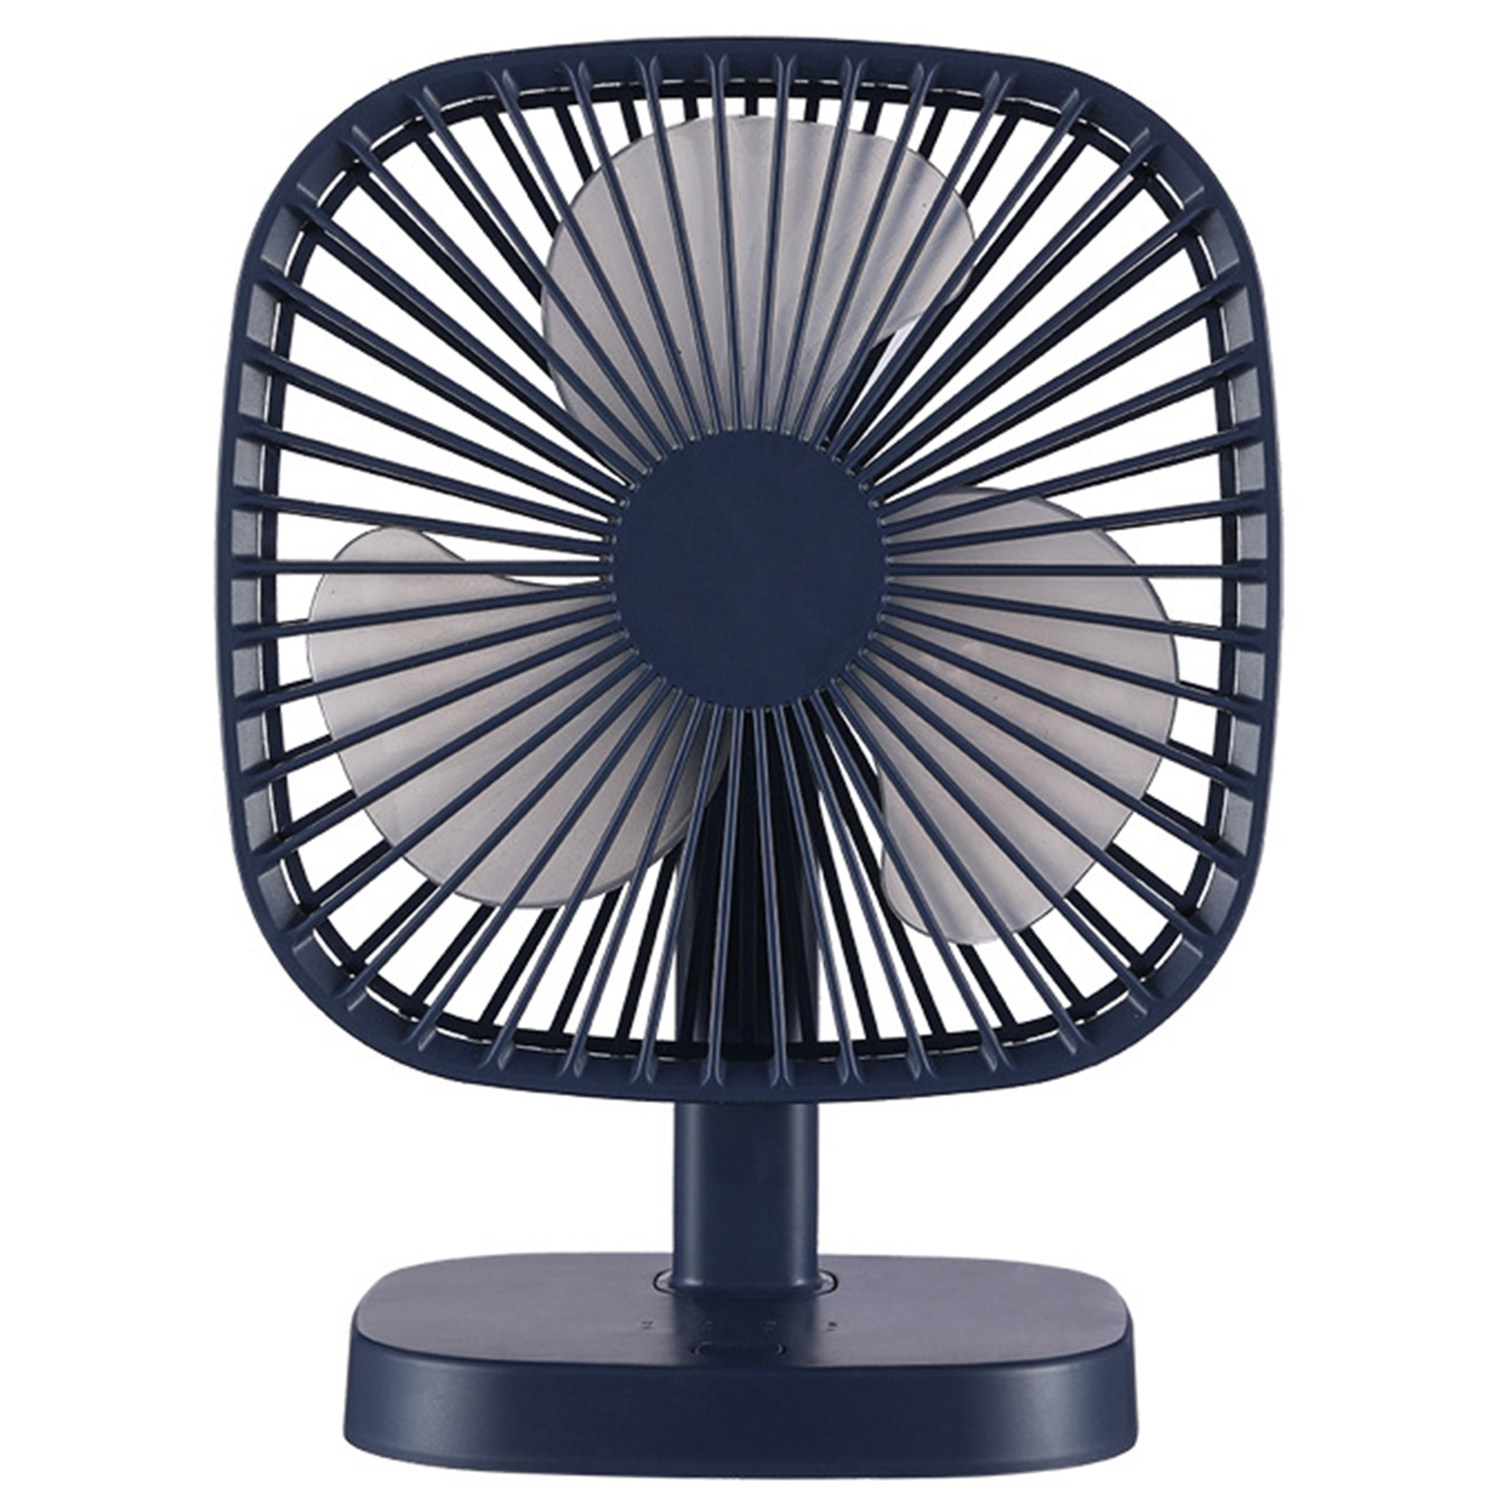 Portable Mini Usb Fan Rechargeable Large Wind Ultra Quiet  Suitable For Office  Camping  Outdoor|Fans| |  - title=